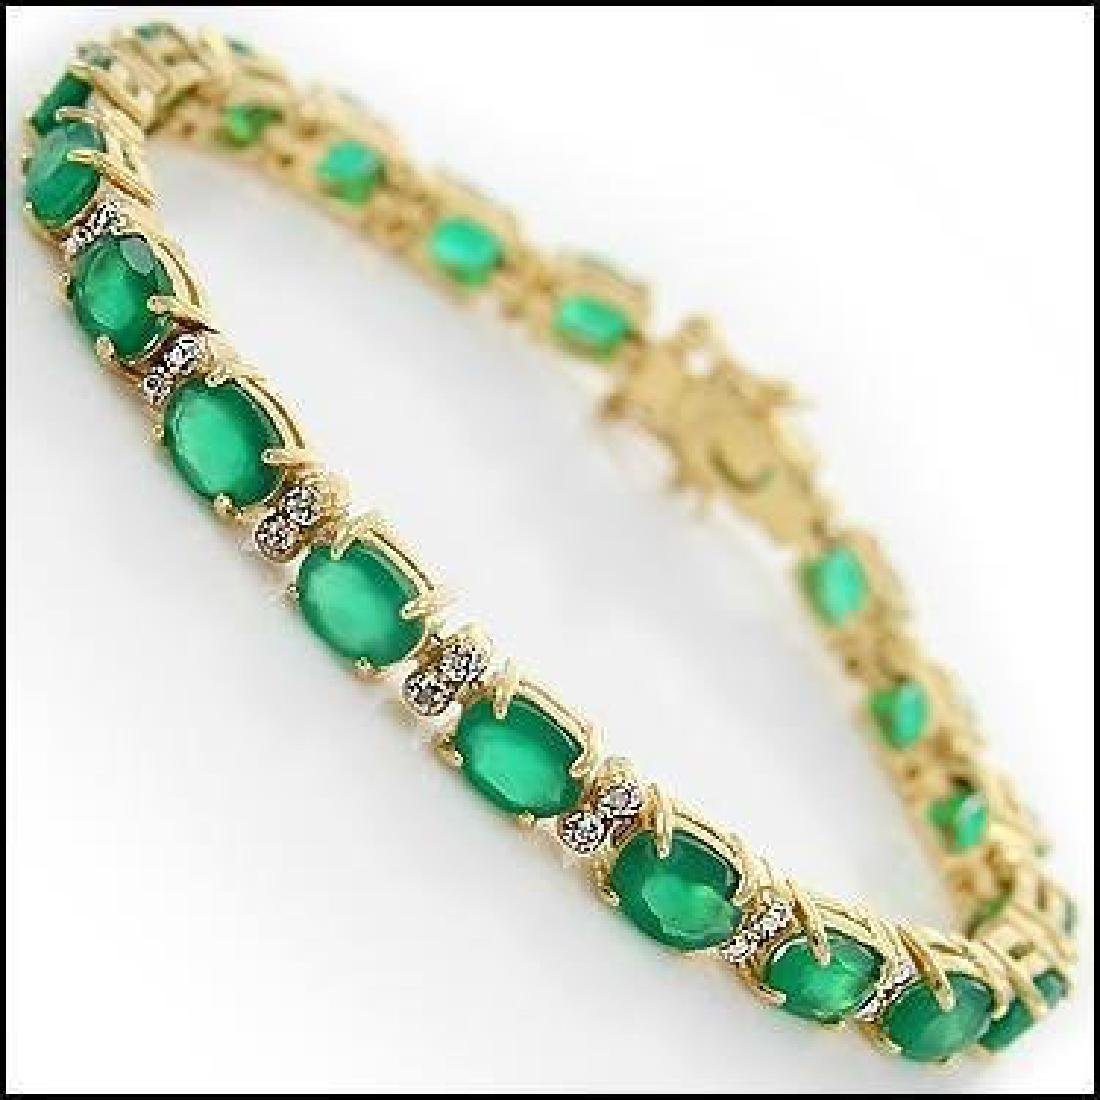 13 CT Green Agate Diamond Tennis Bracelet - 2